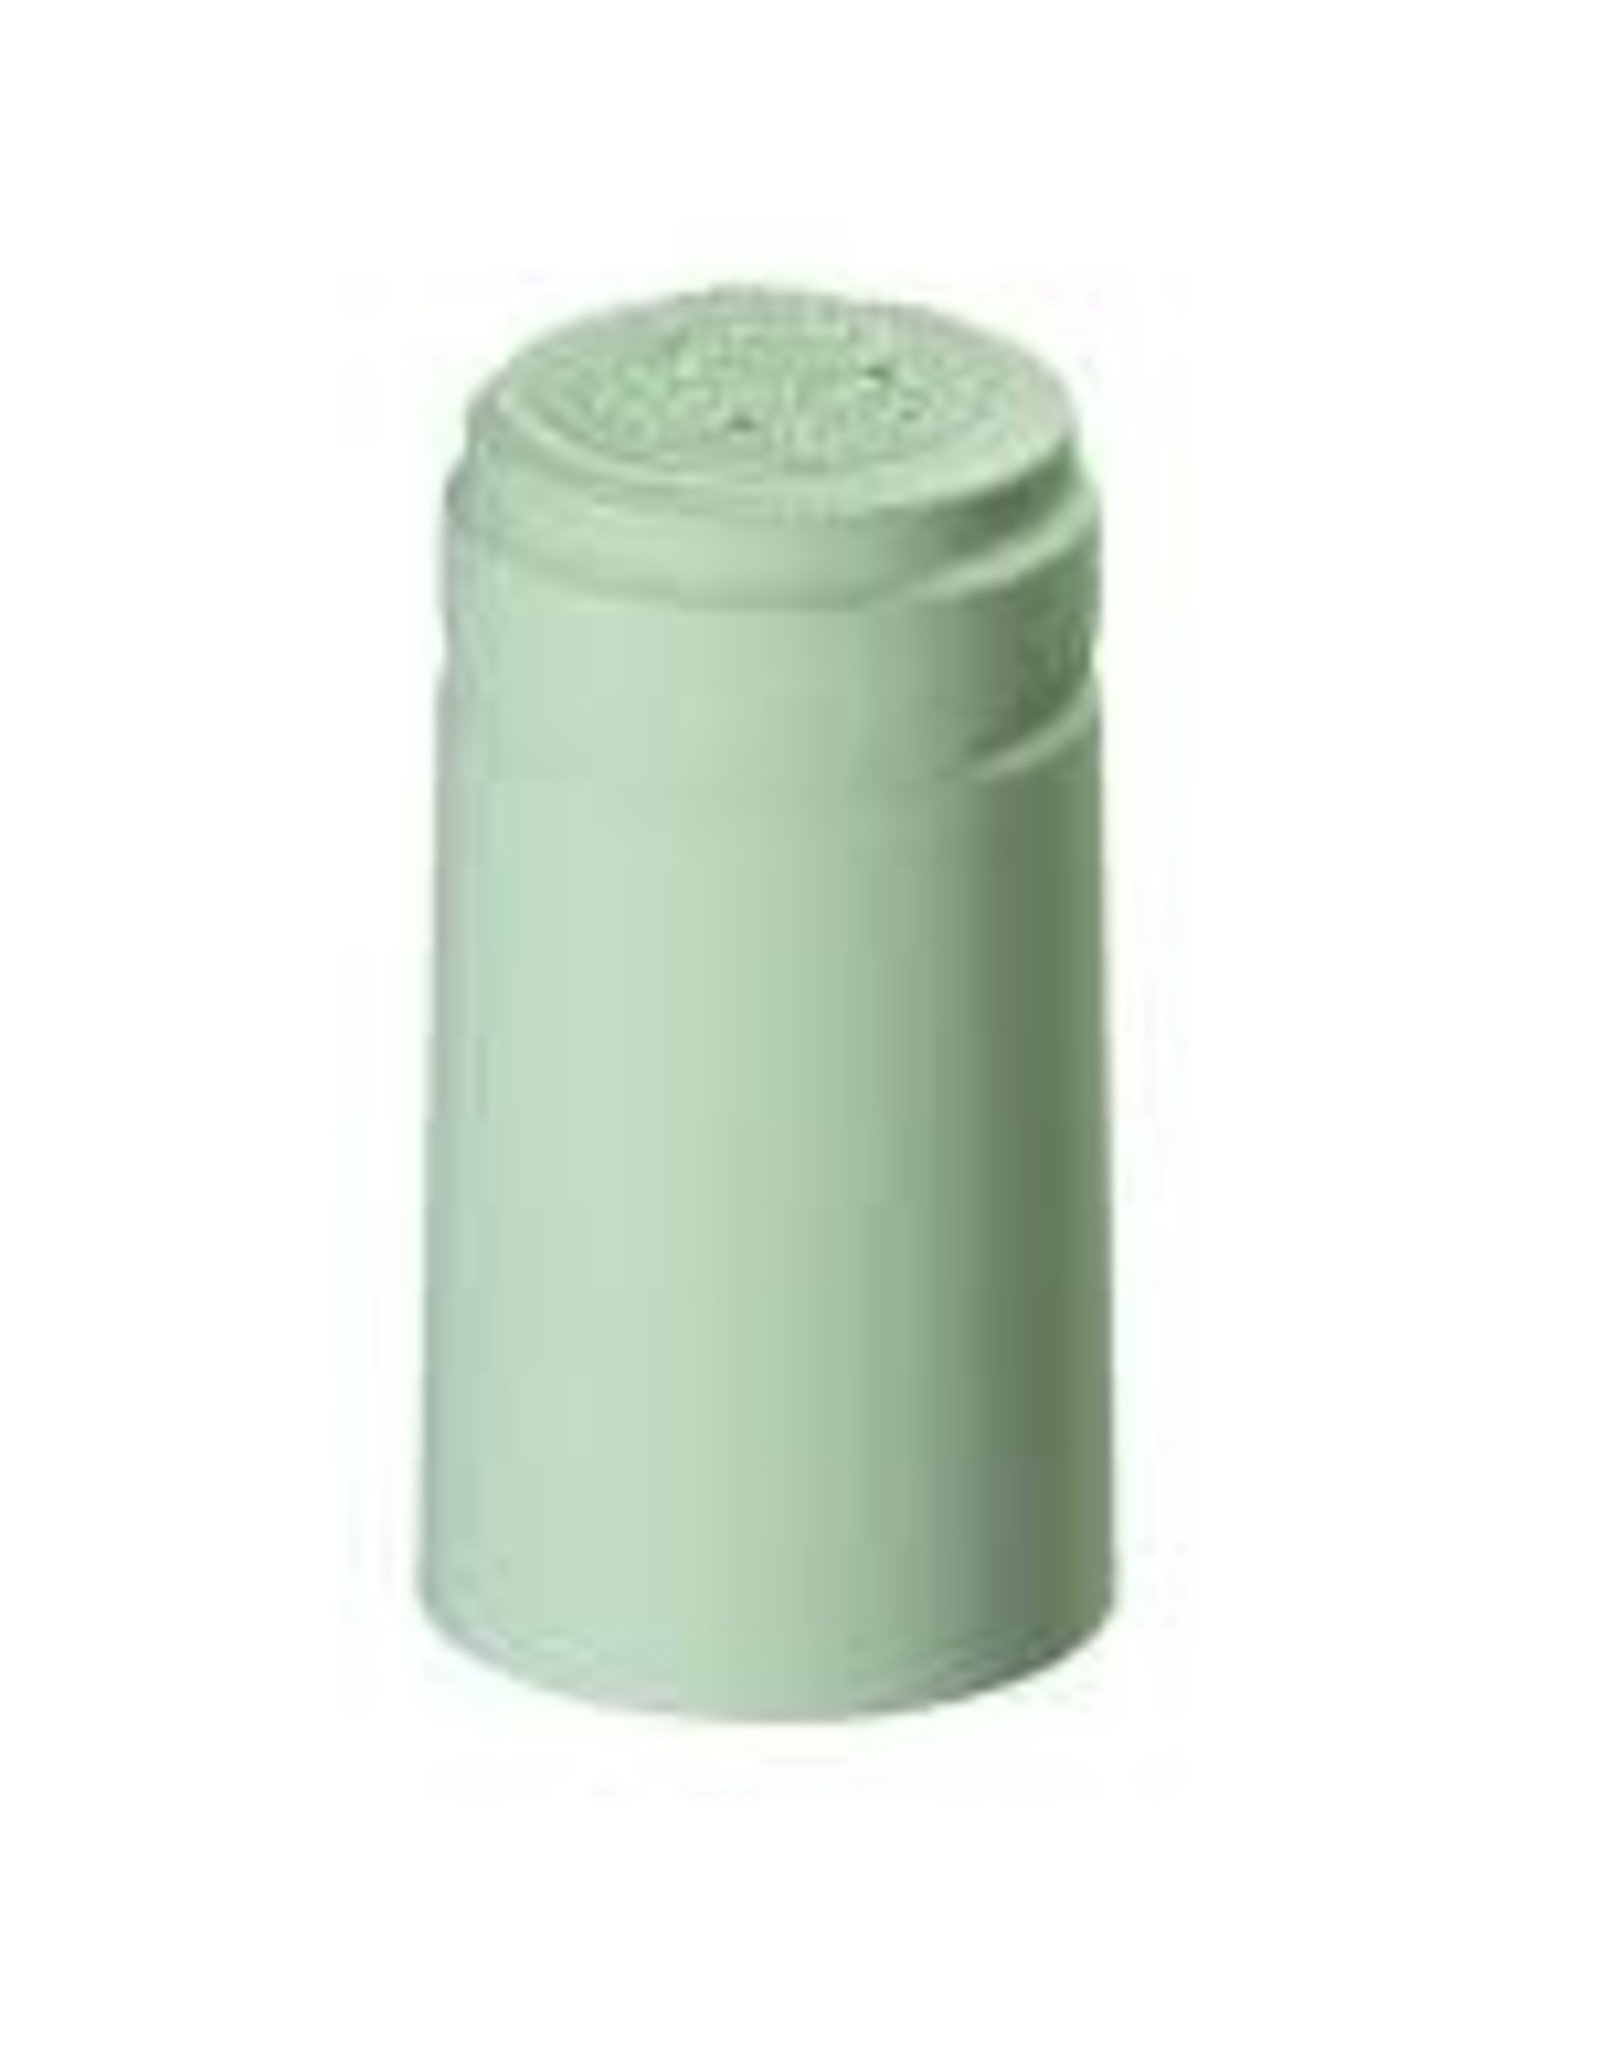 GREEN SAGE PVC SHRINK CAPSULES 30 COUNT